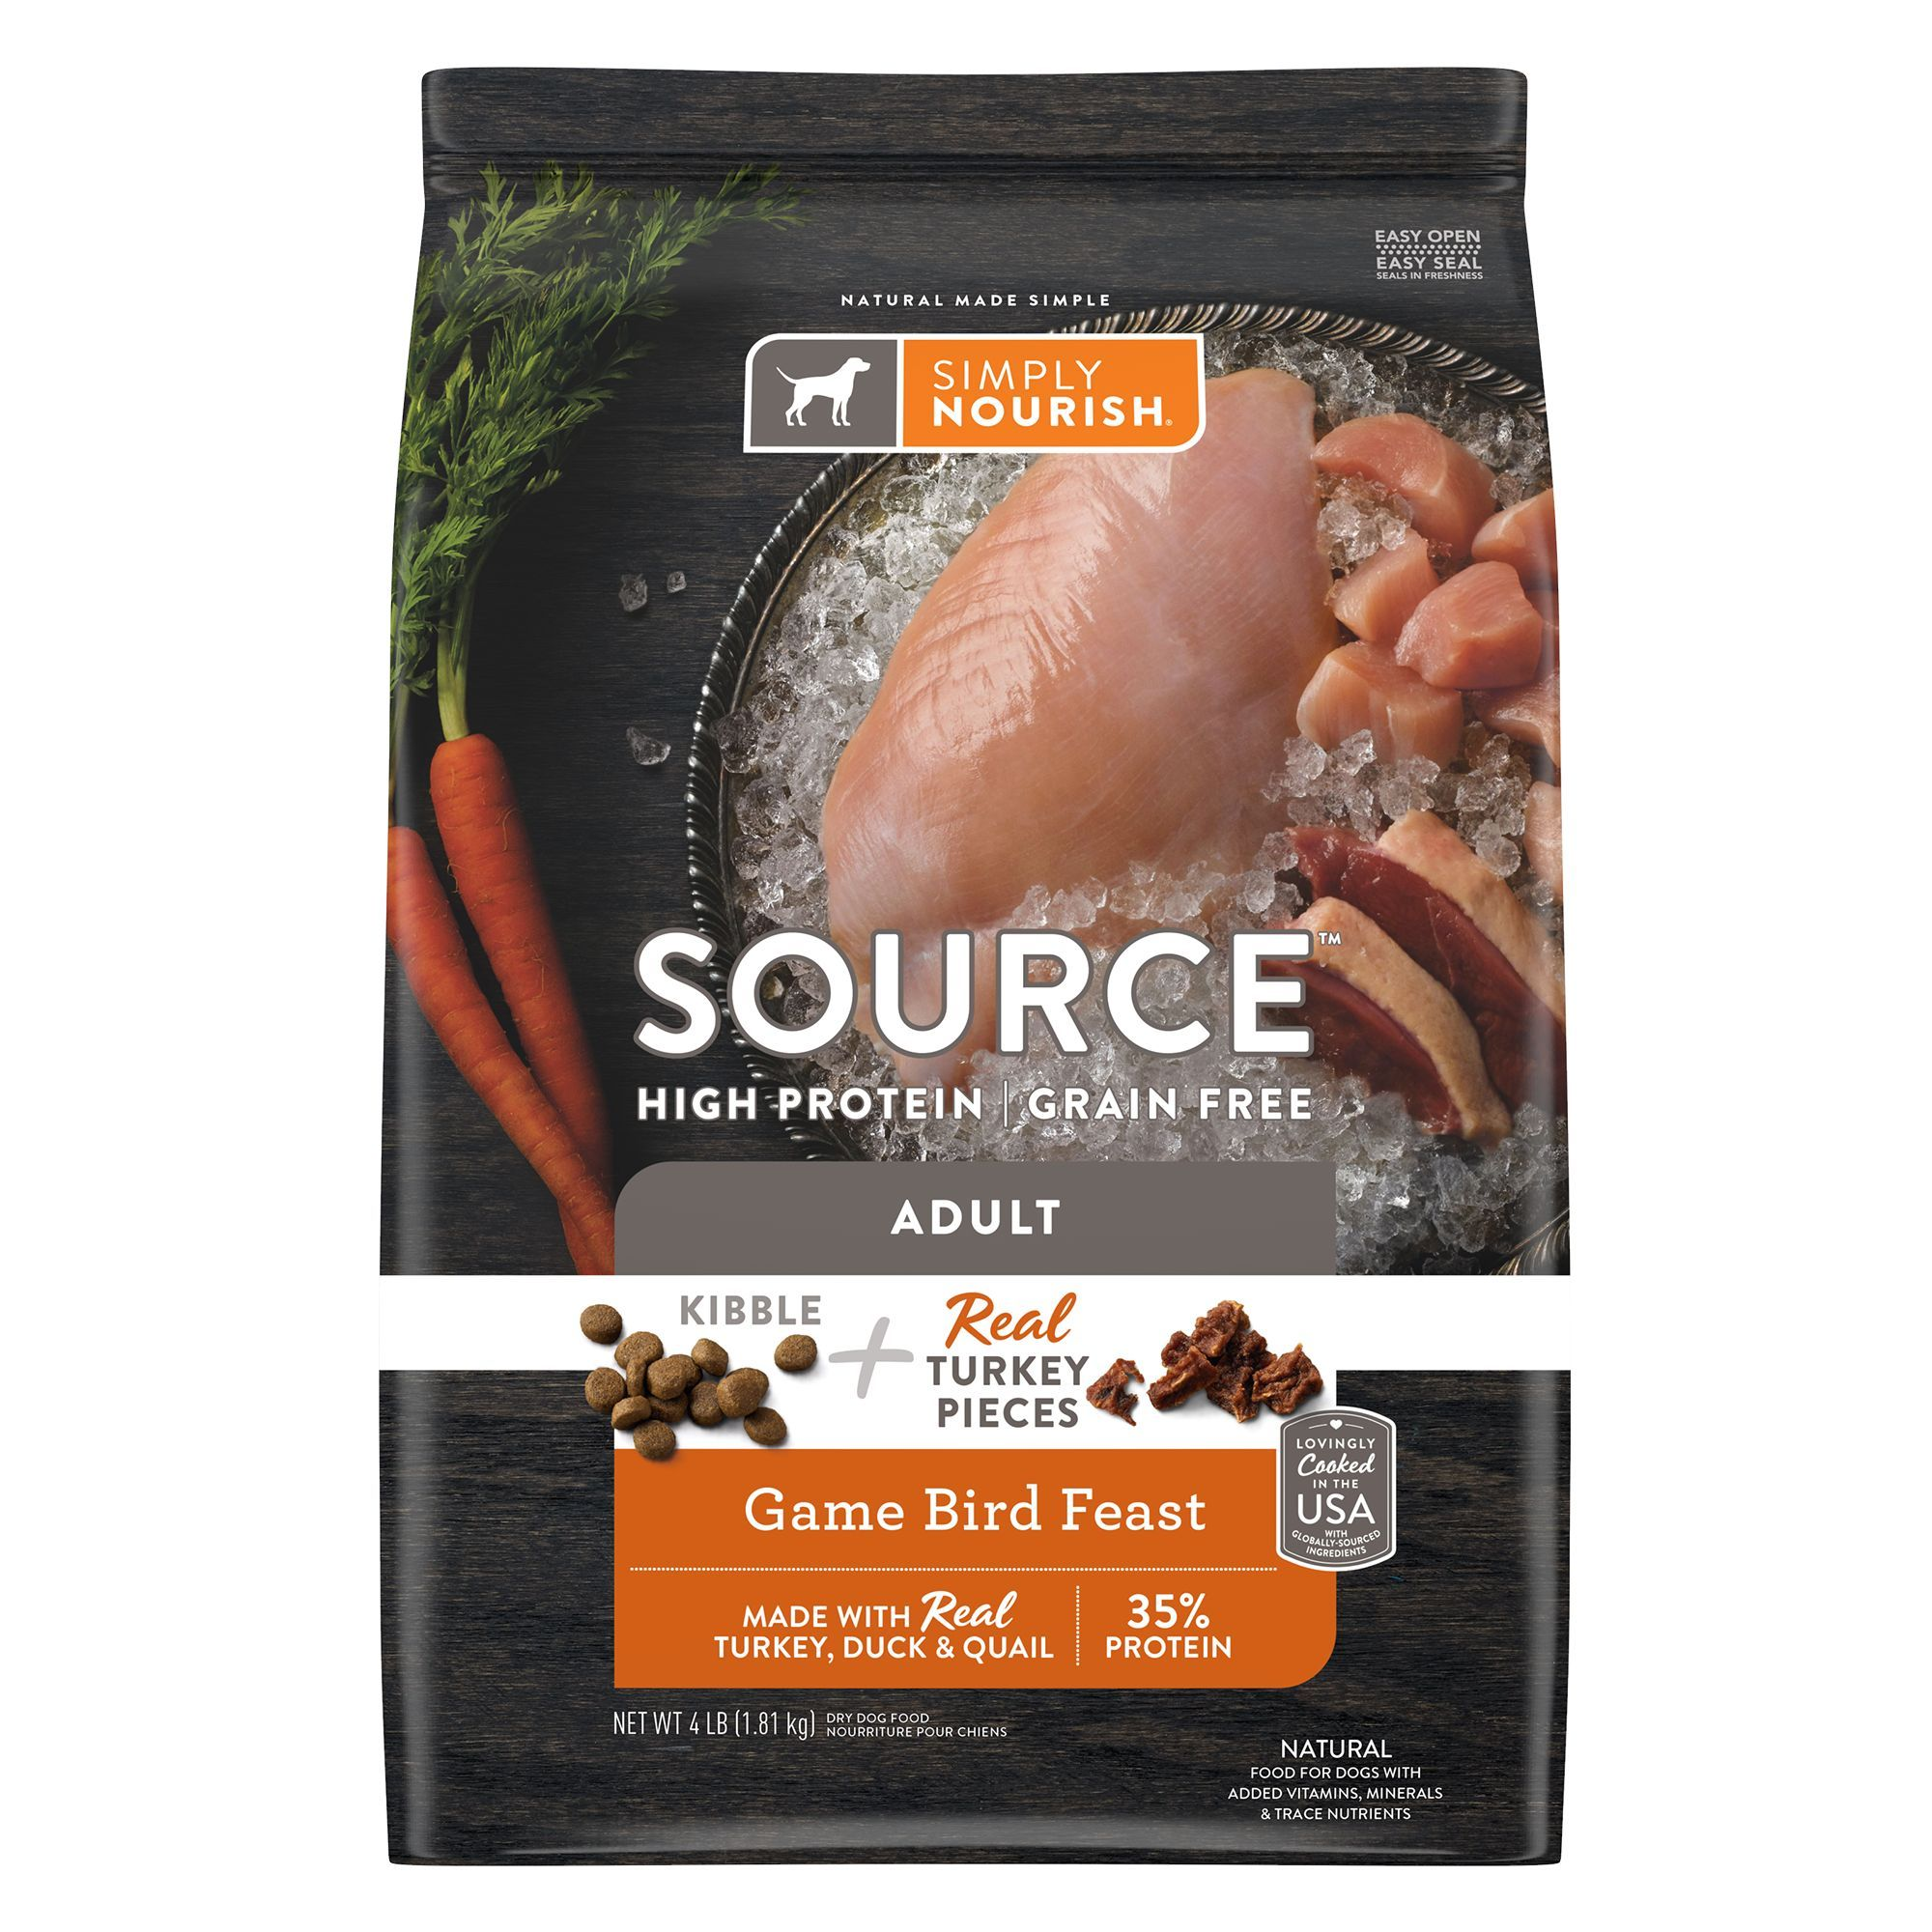 Simply Nourish Source Dog Food Natural High Protein Grain